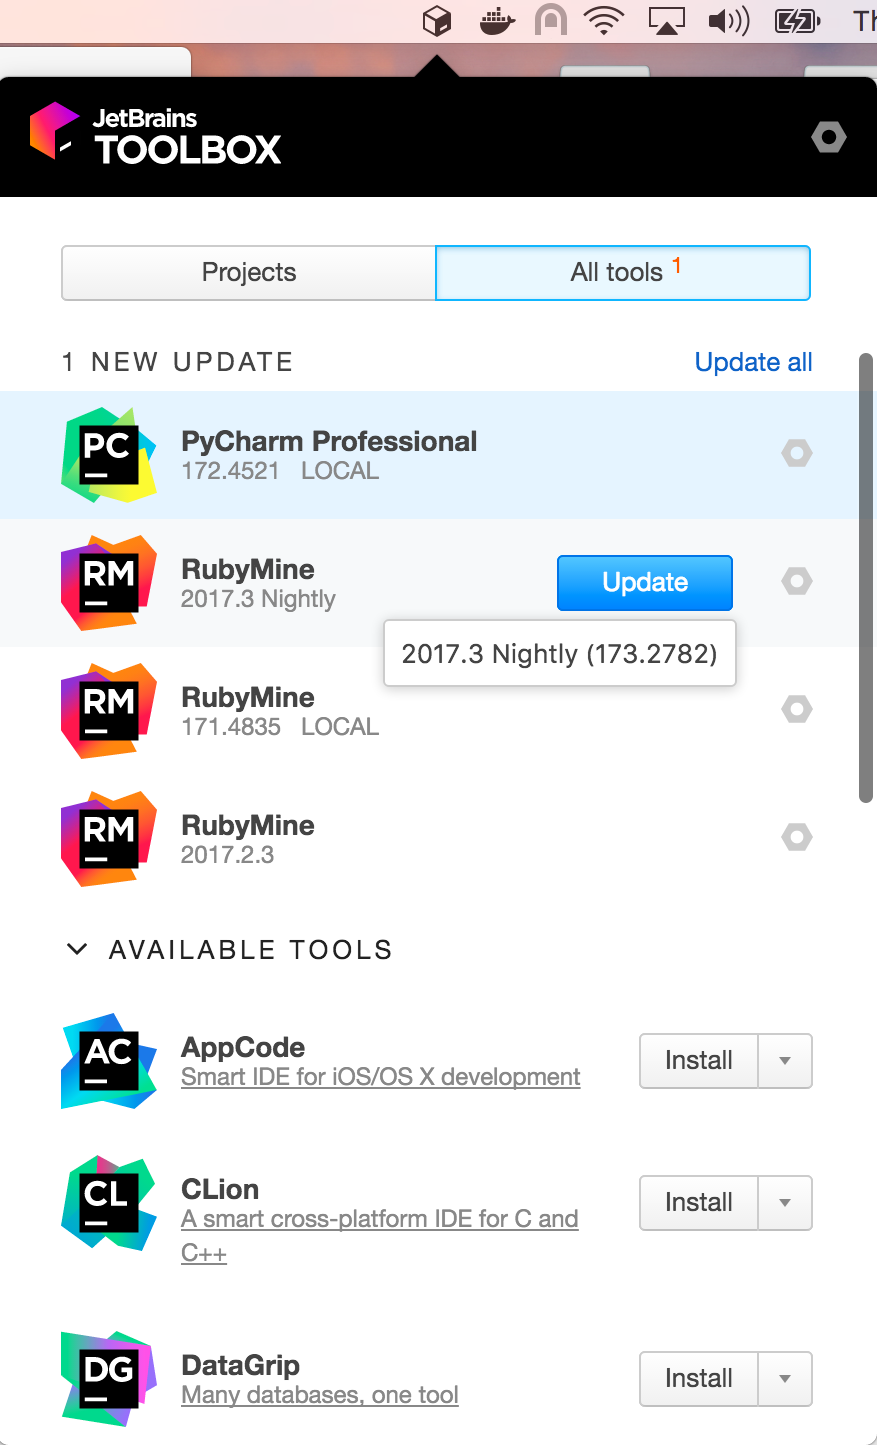 PyCharm in the Toolbox app